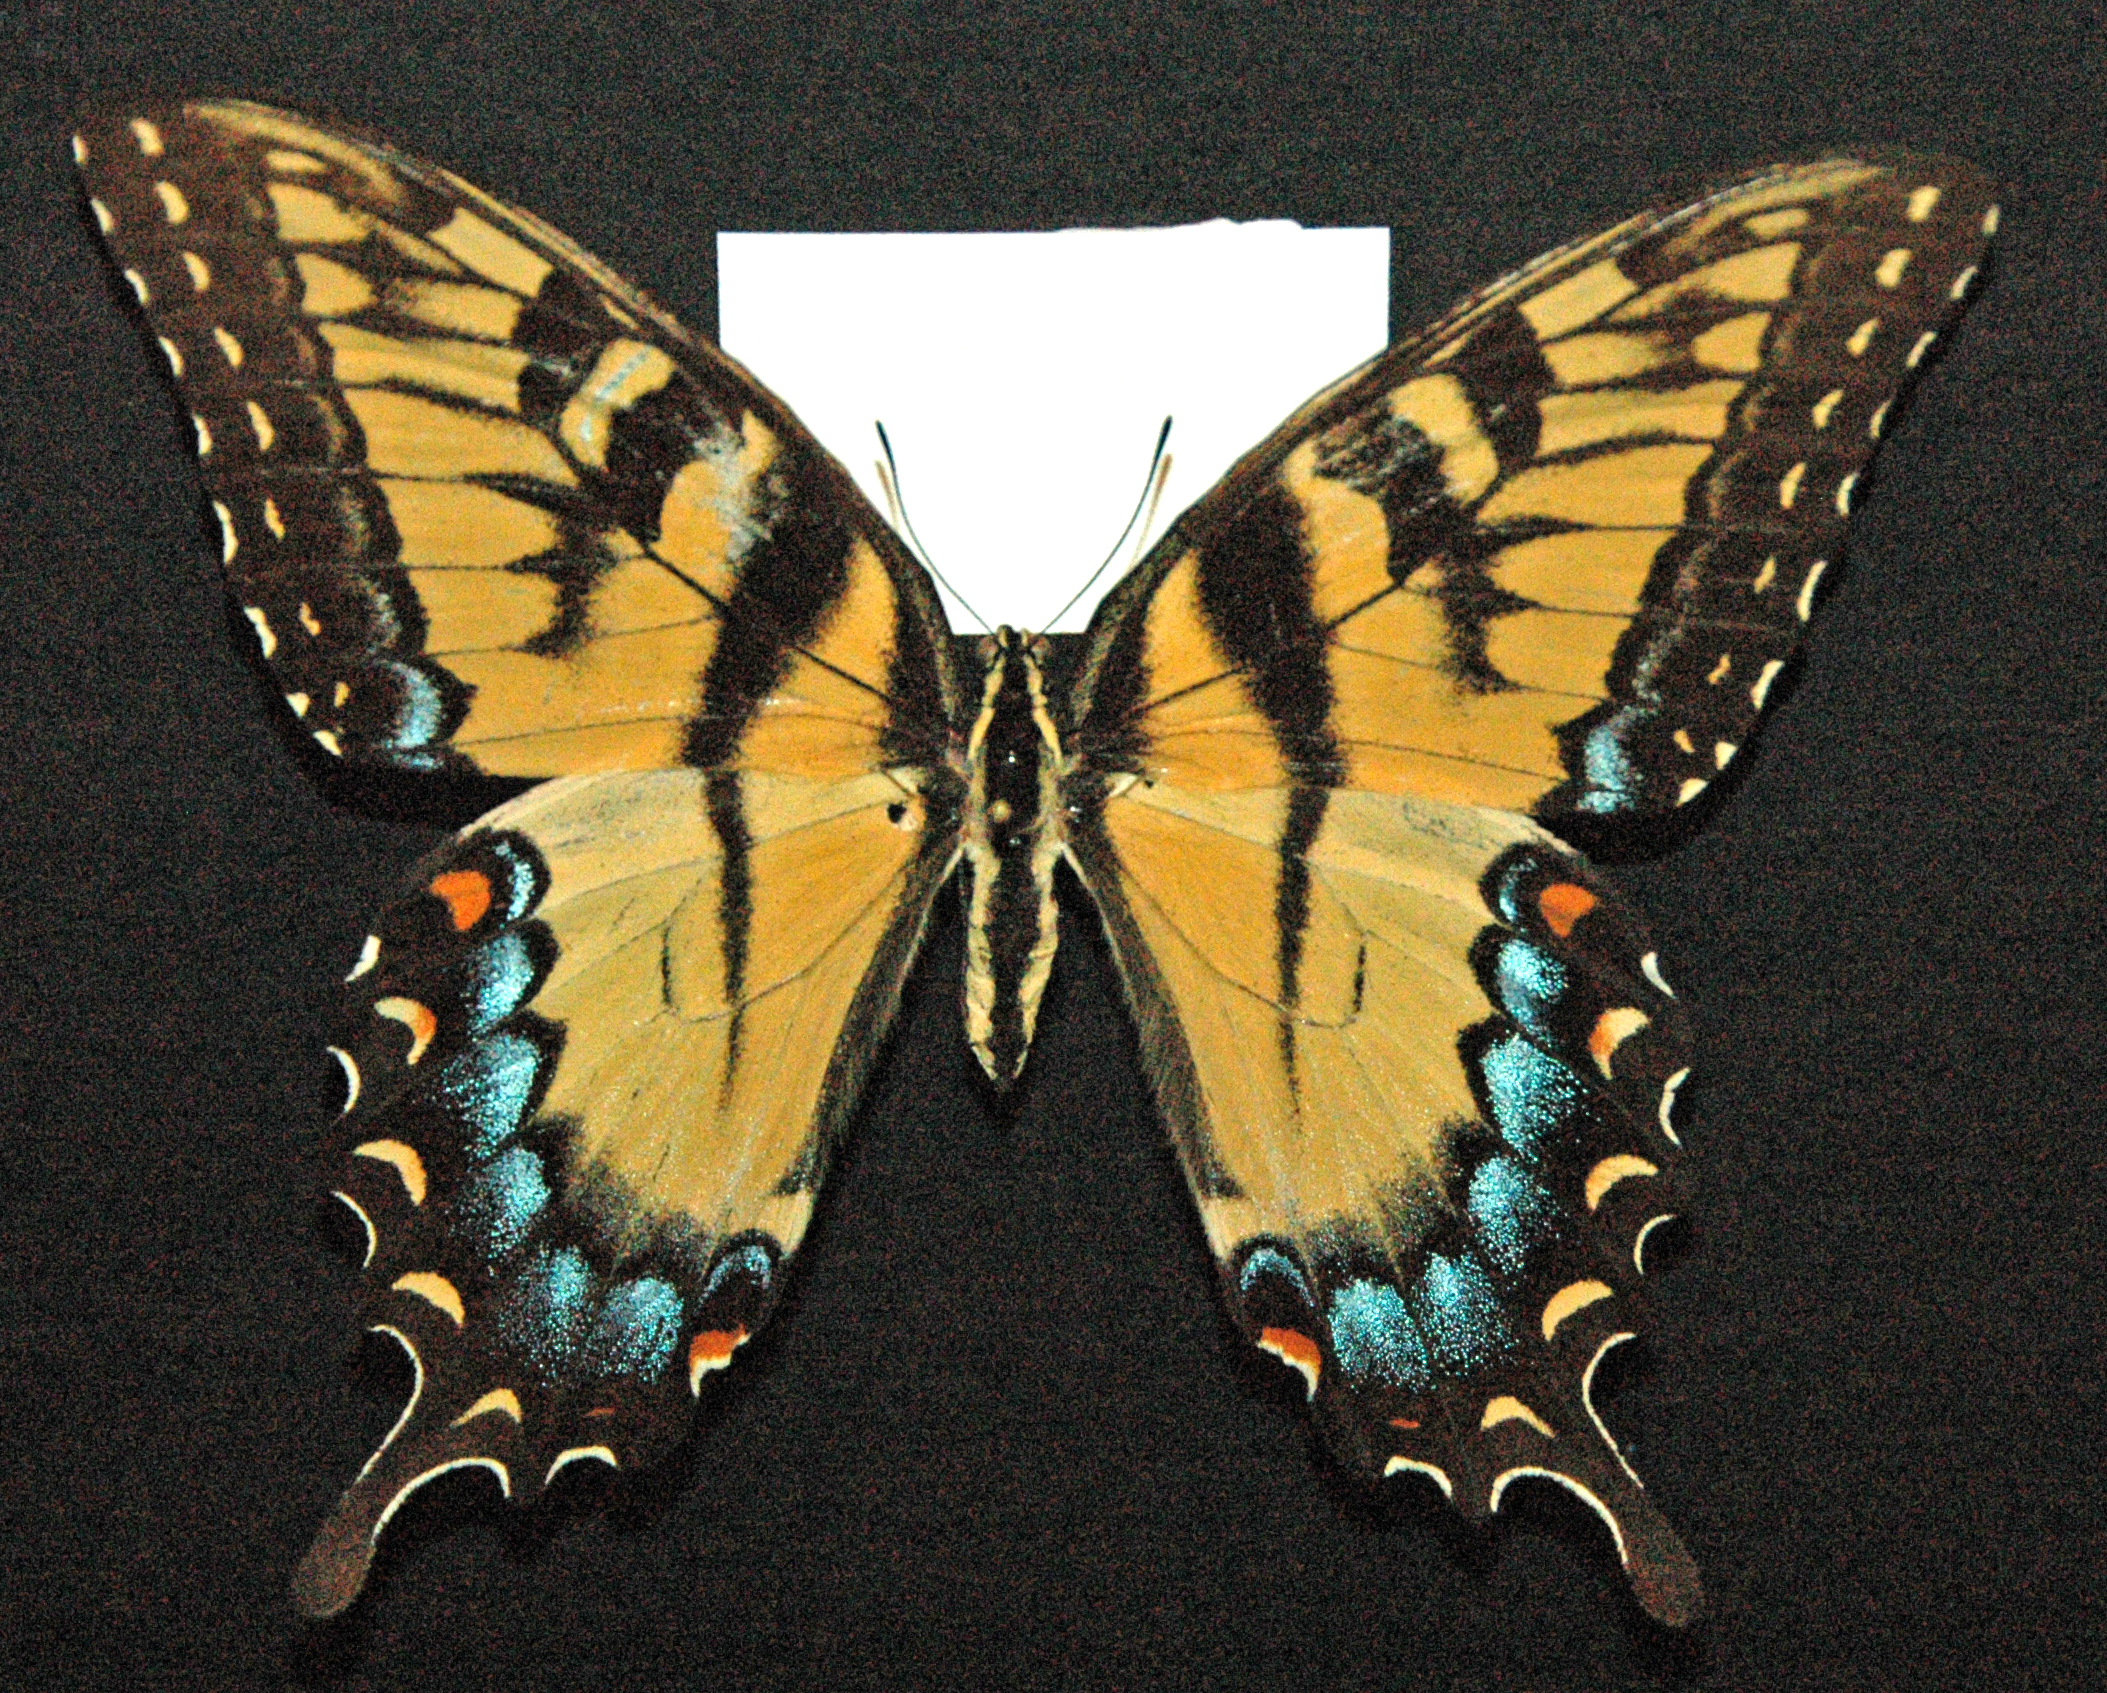 File:Papilio glaucus (female eastern tiger swallowtail